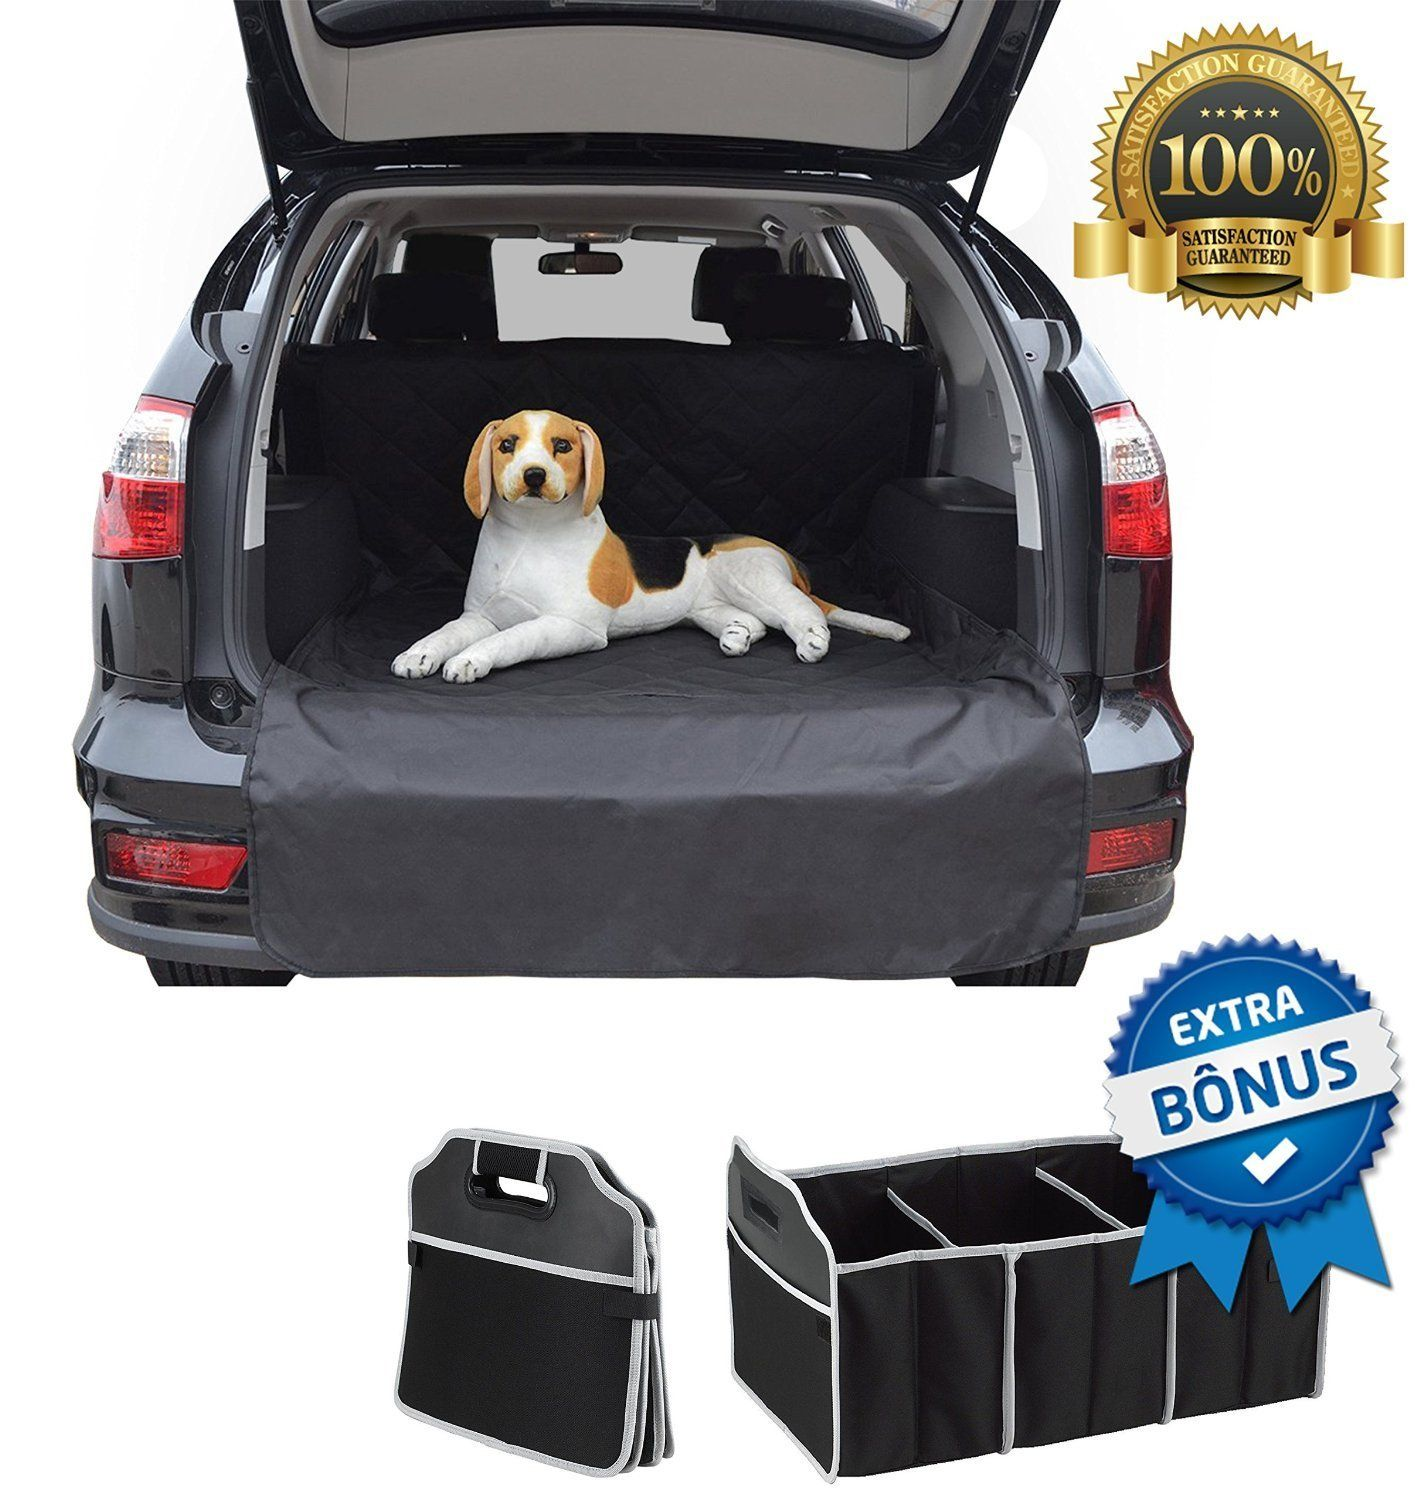 0d20ac95e559ebc0215a1814ab08119a Take A Look About Jeep Dog Accessories with Captivating Gallery Cars Review